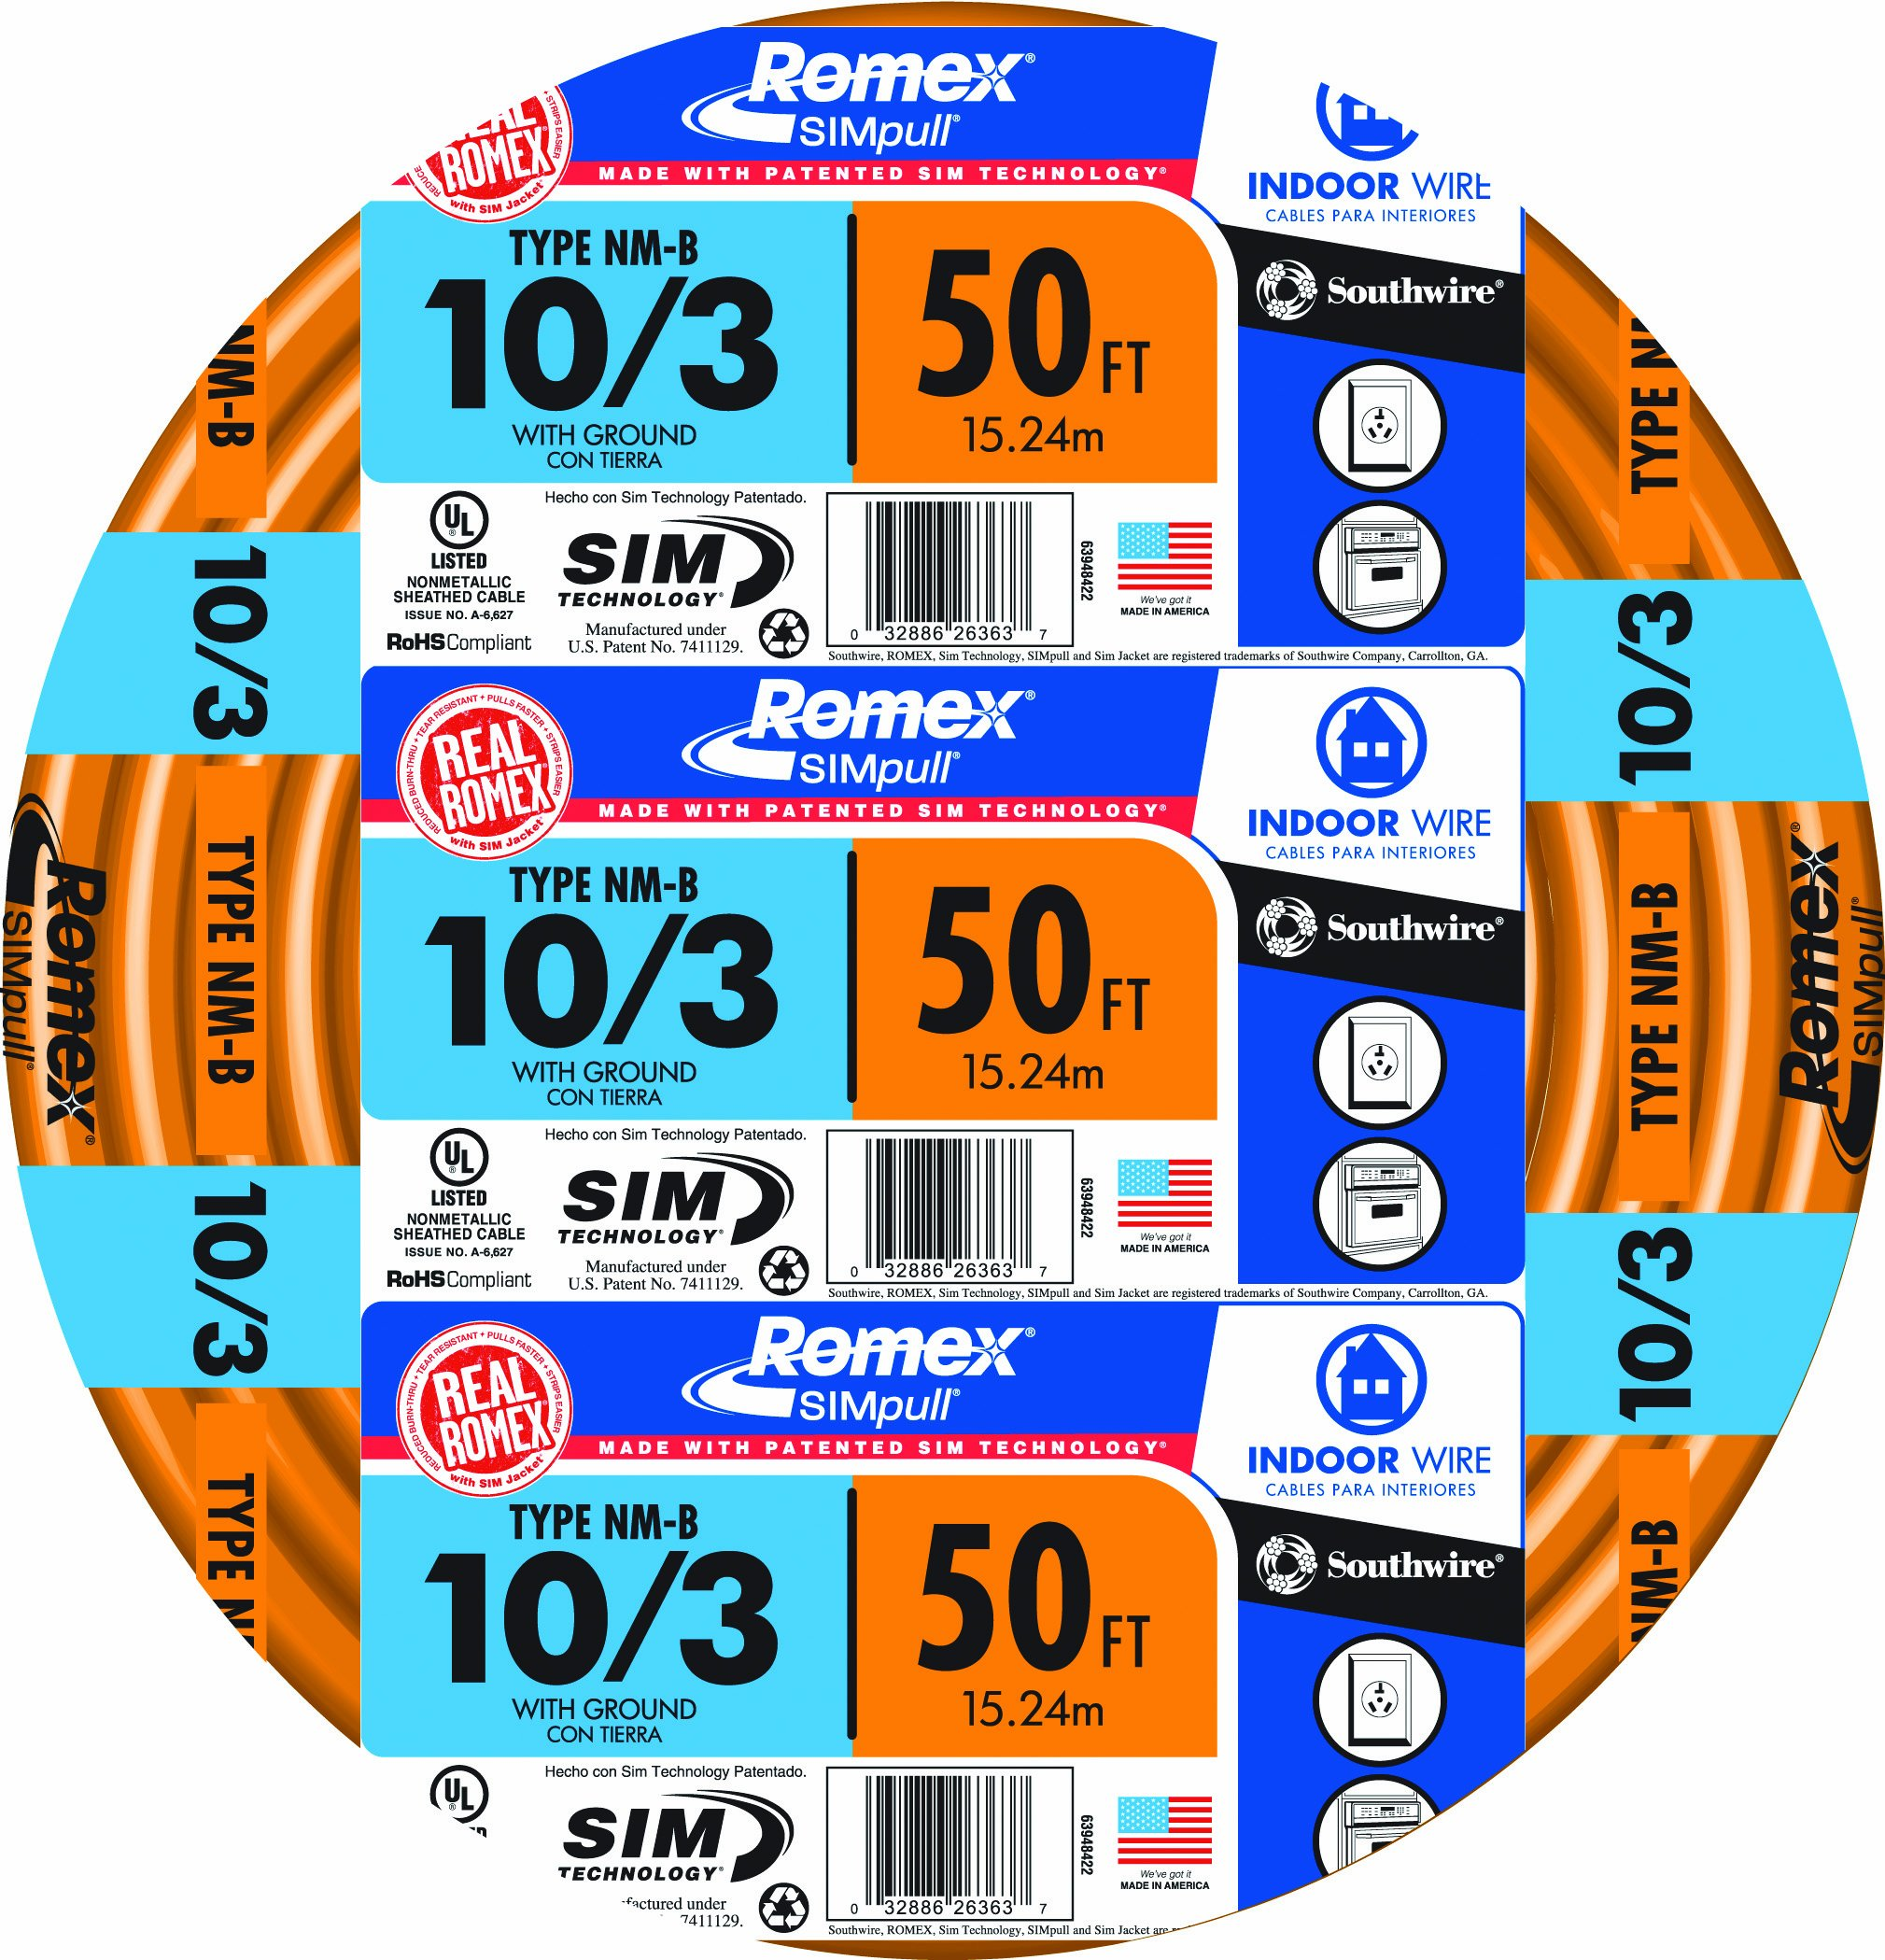 Romex 50 ft, 10/3, 10-3 guage soild indoor wire, simpull electrical ...